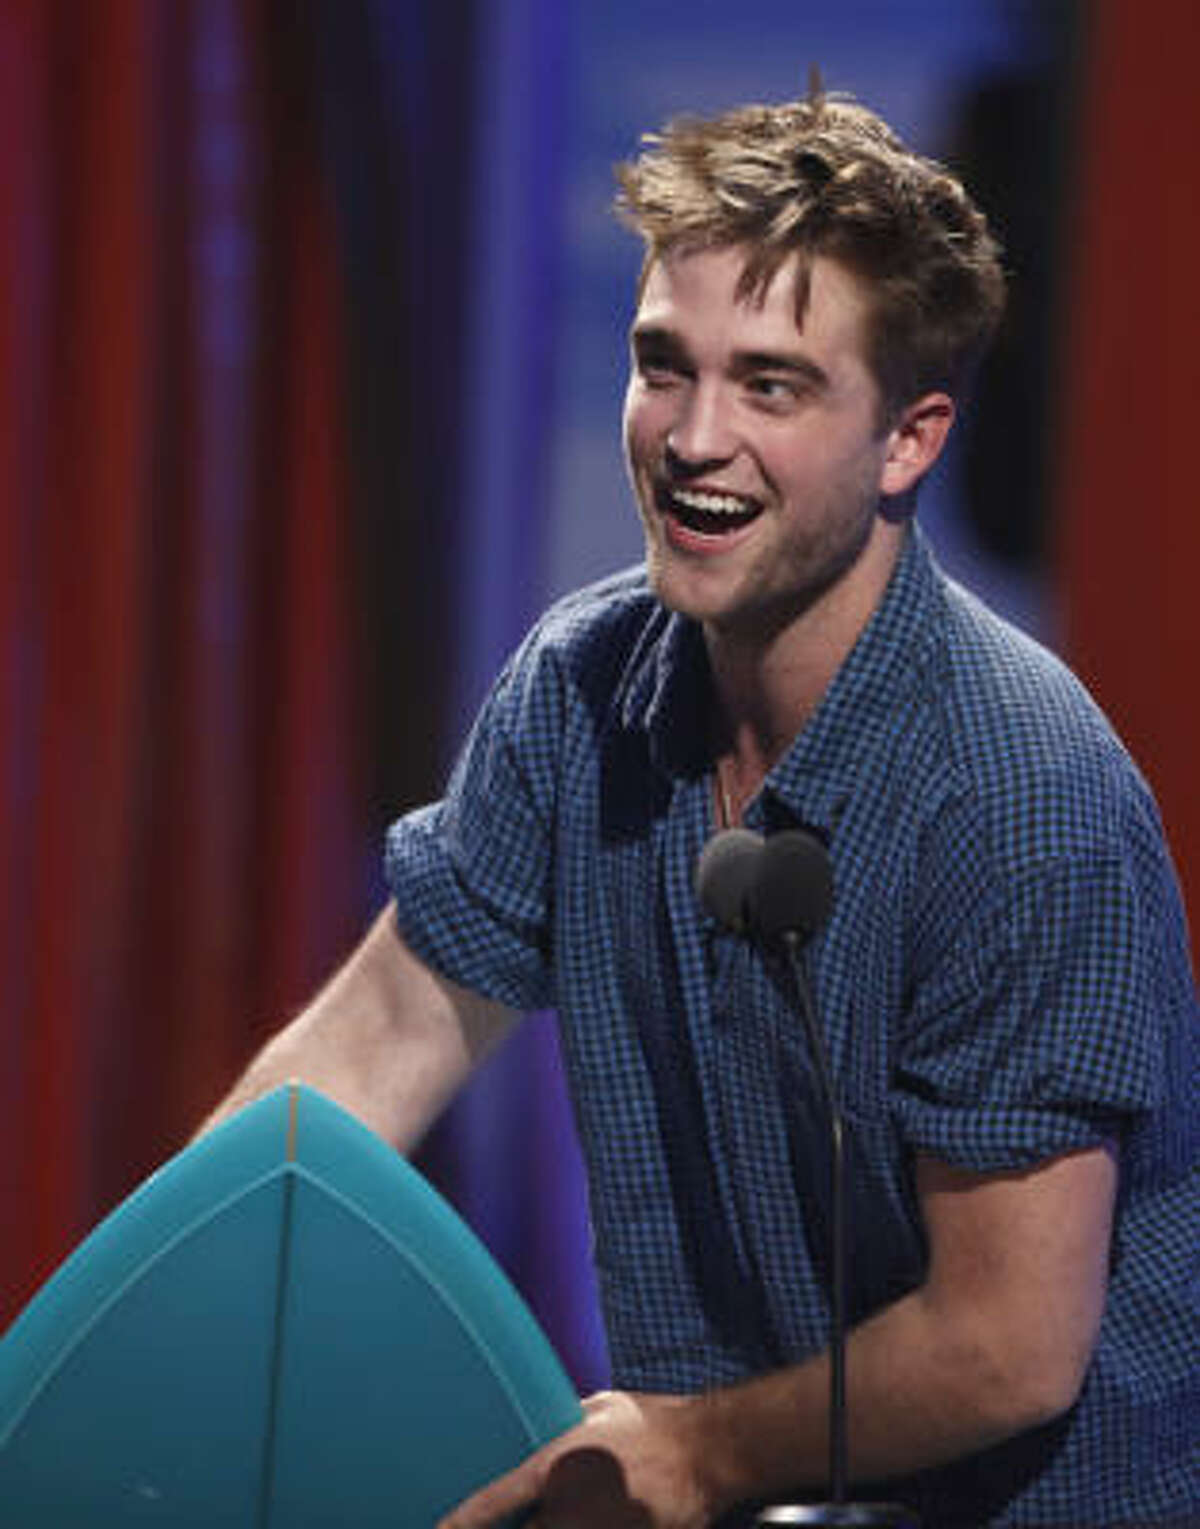 Another Twilight win: Robert Pattinson was voted the best actor in a drama film.